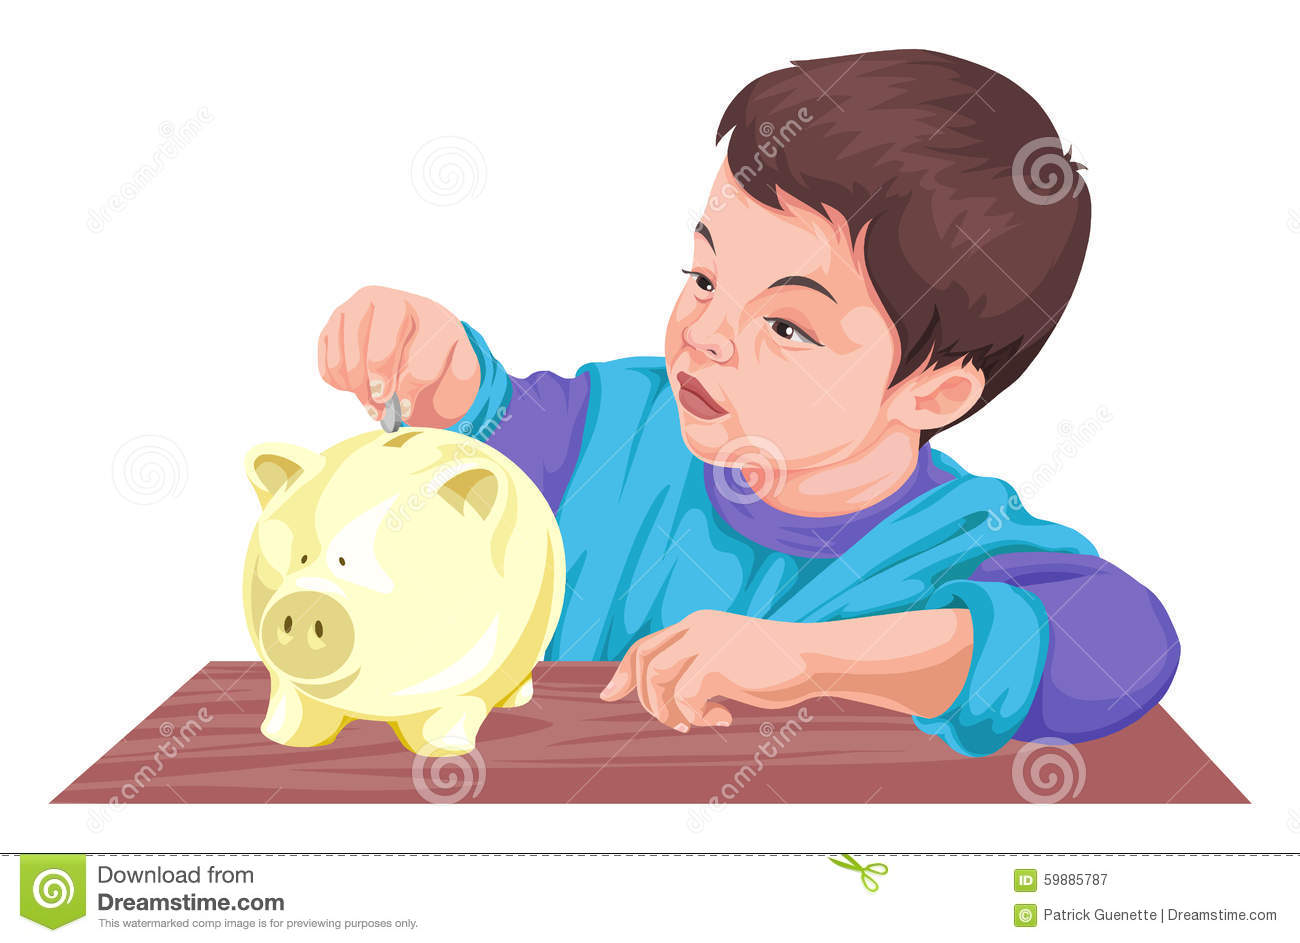 Kids saving money clipart.